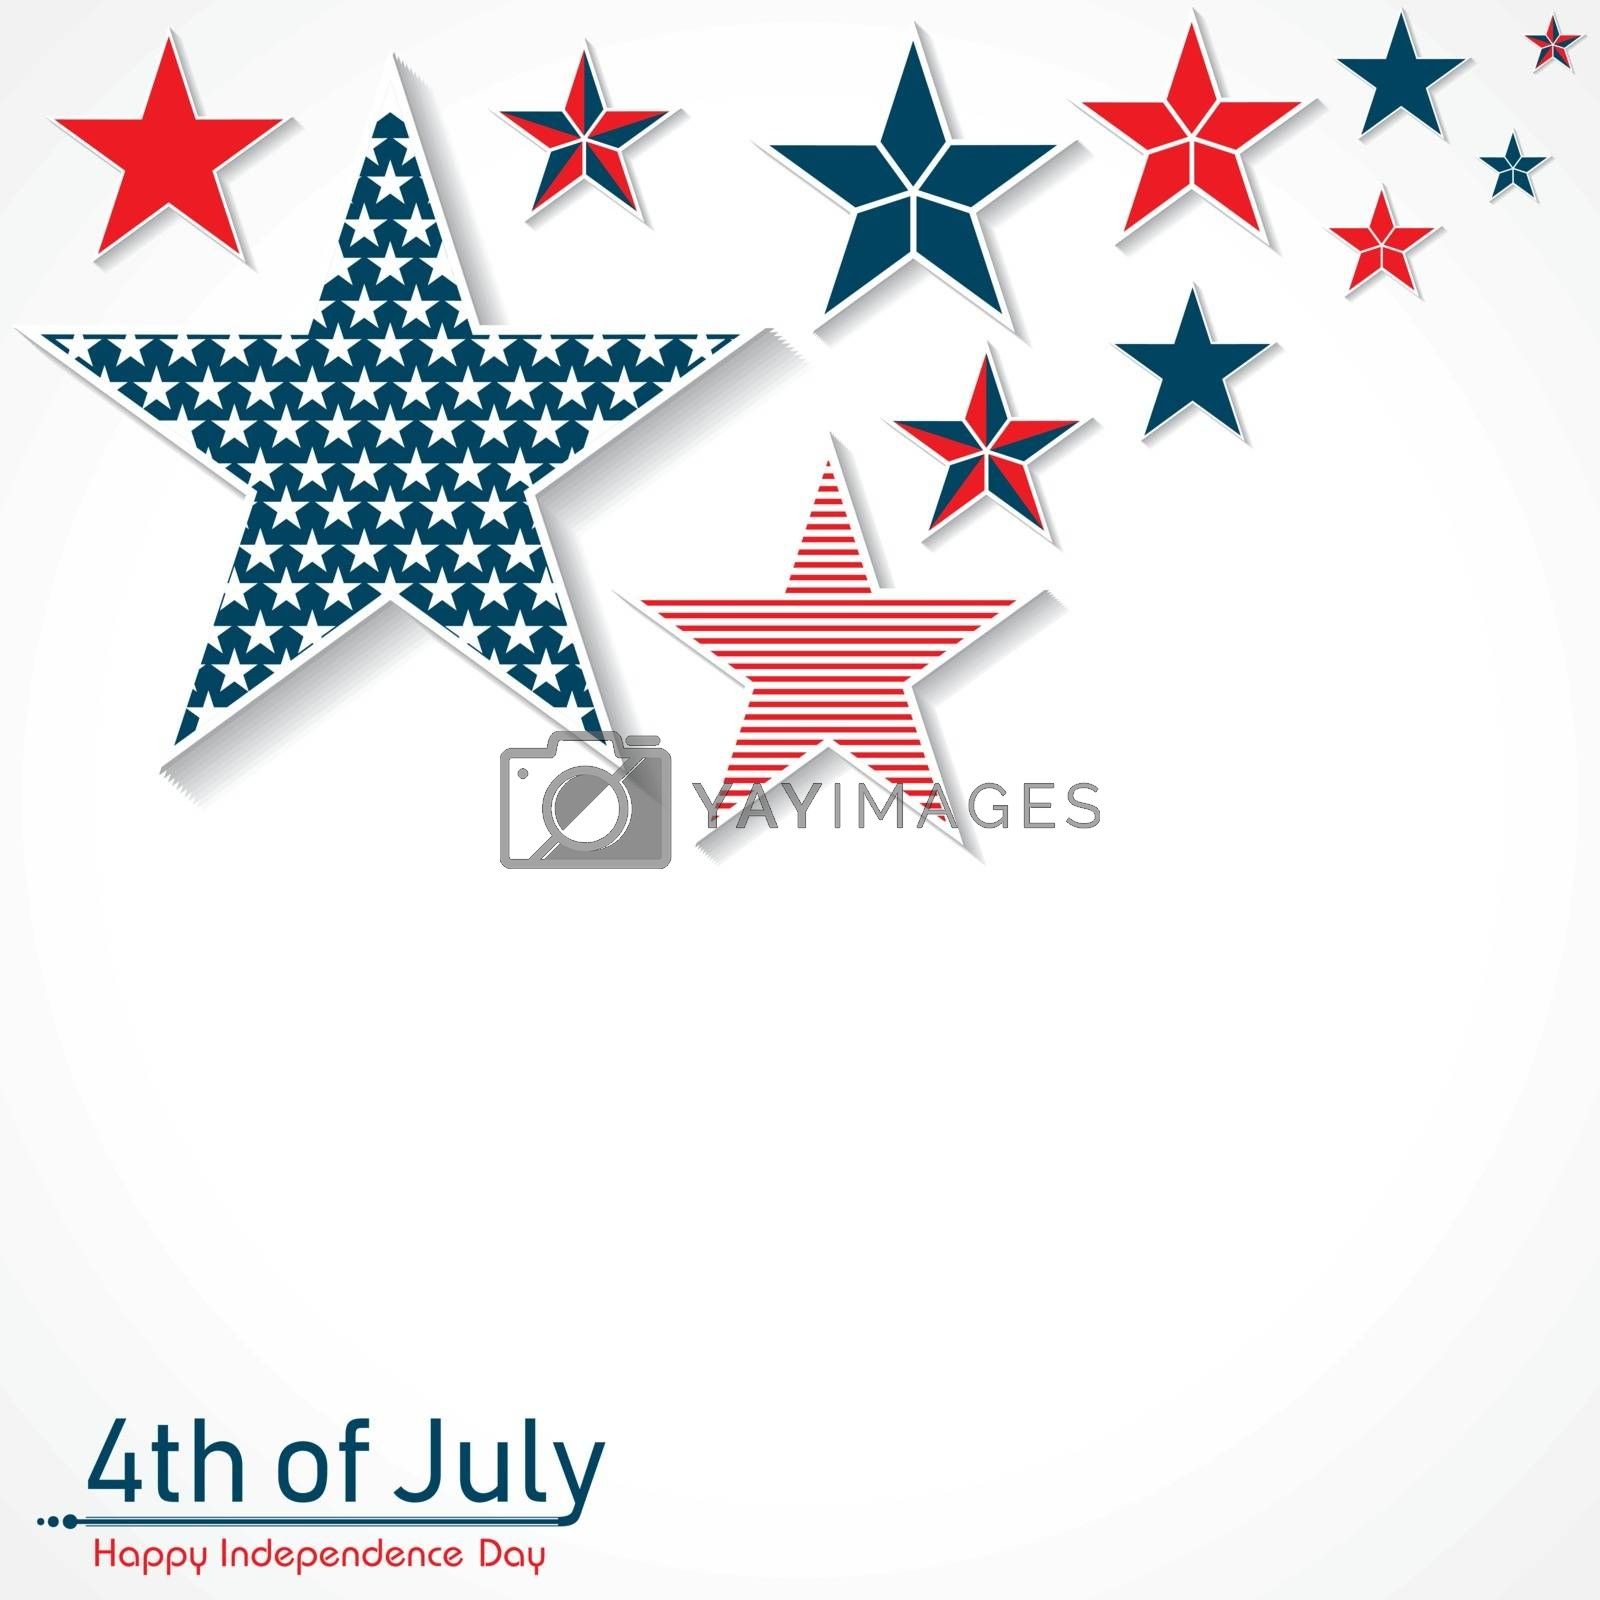 Happy Independence Day of United States 4th July by graphicsdunia4you